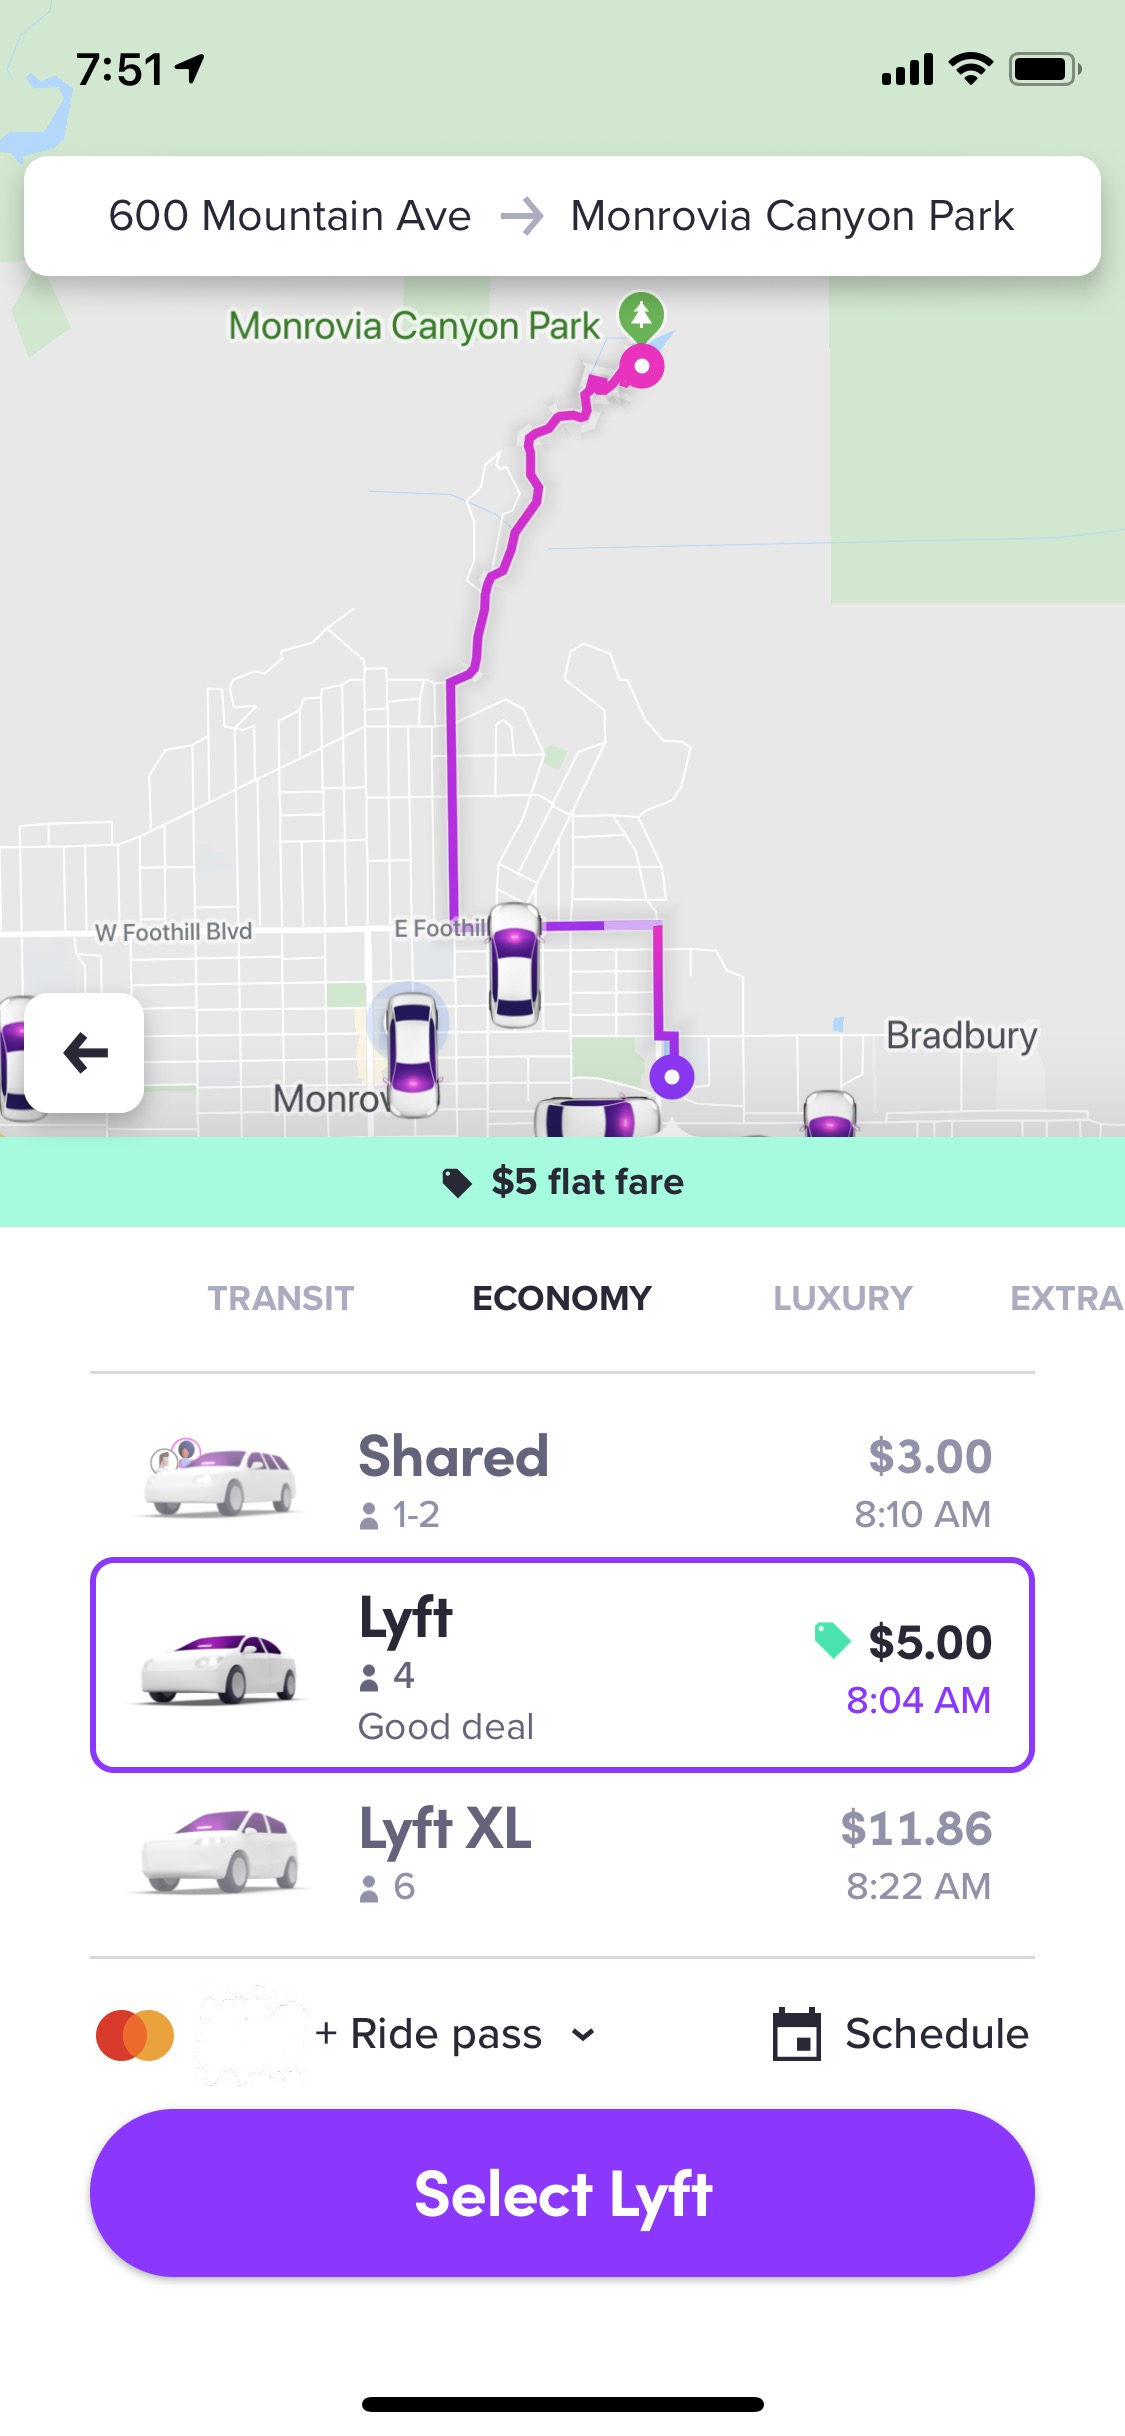 Non-Shared Lyft